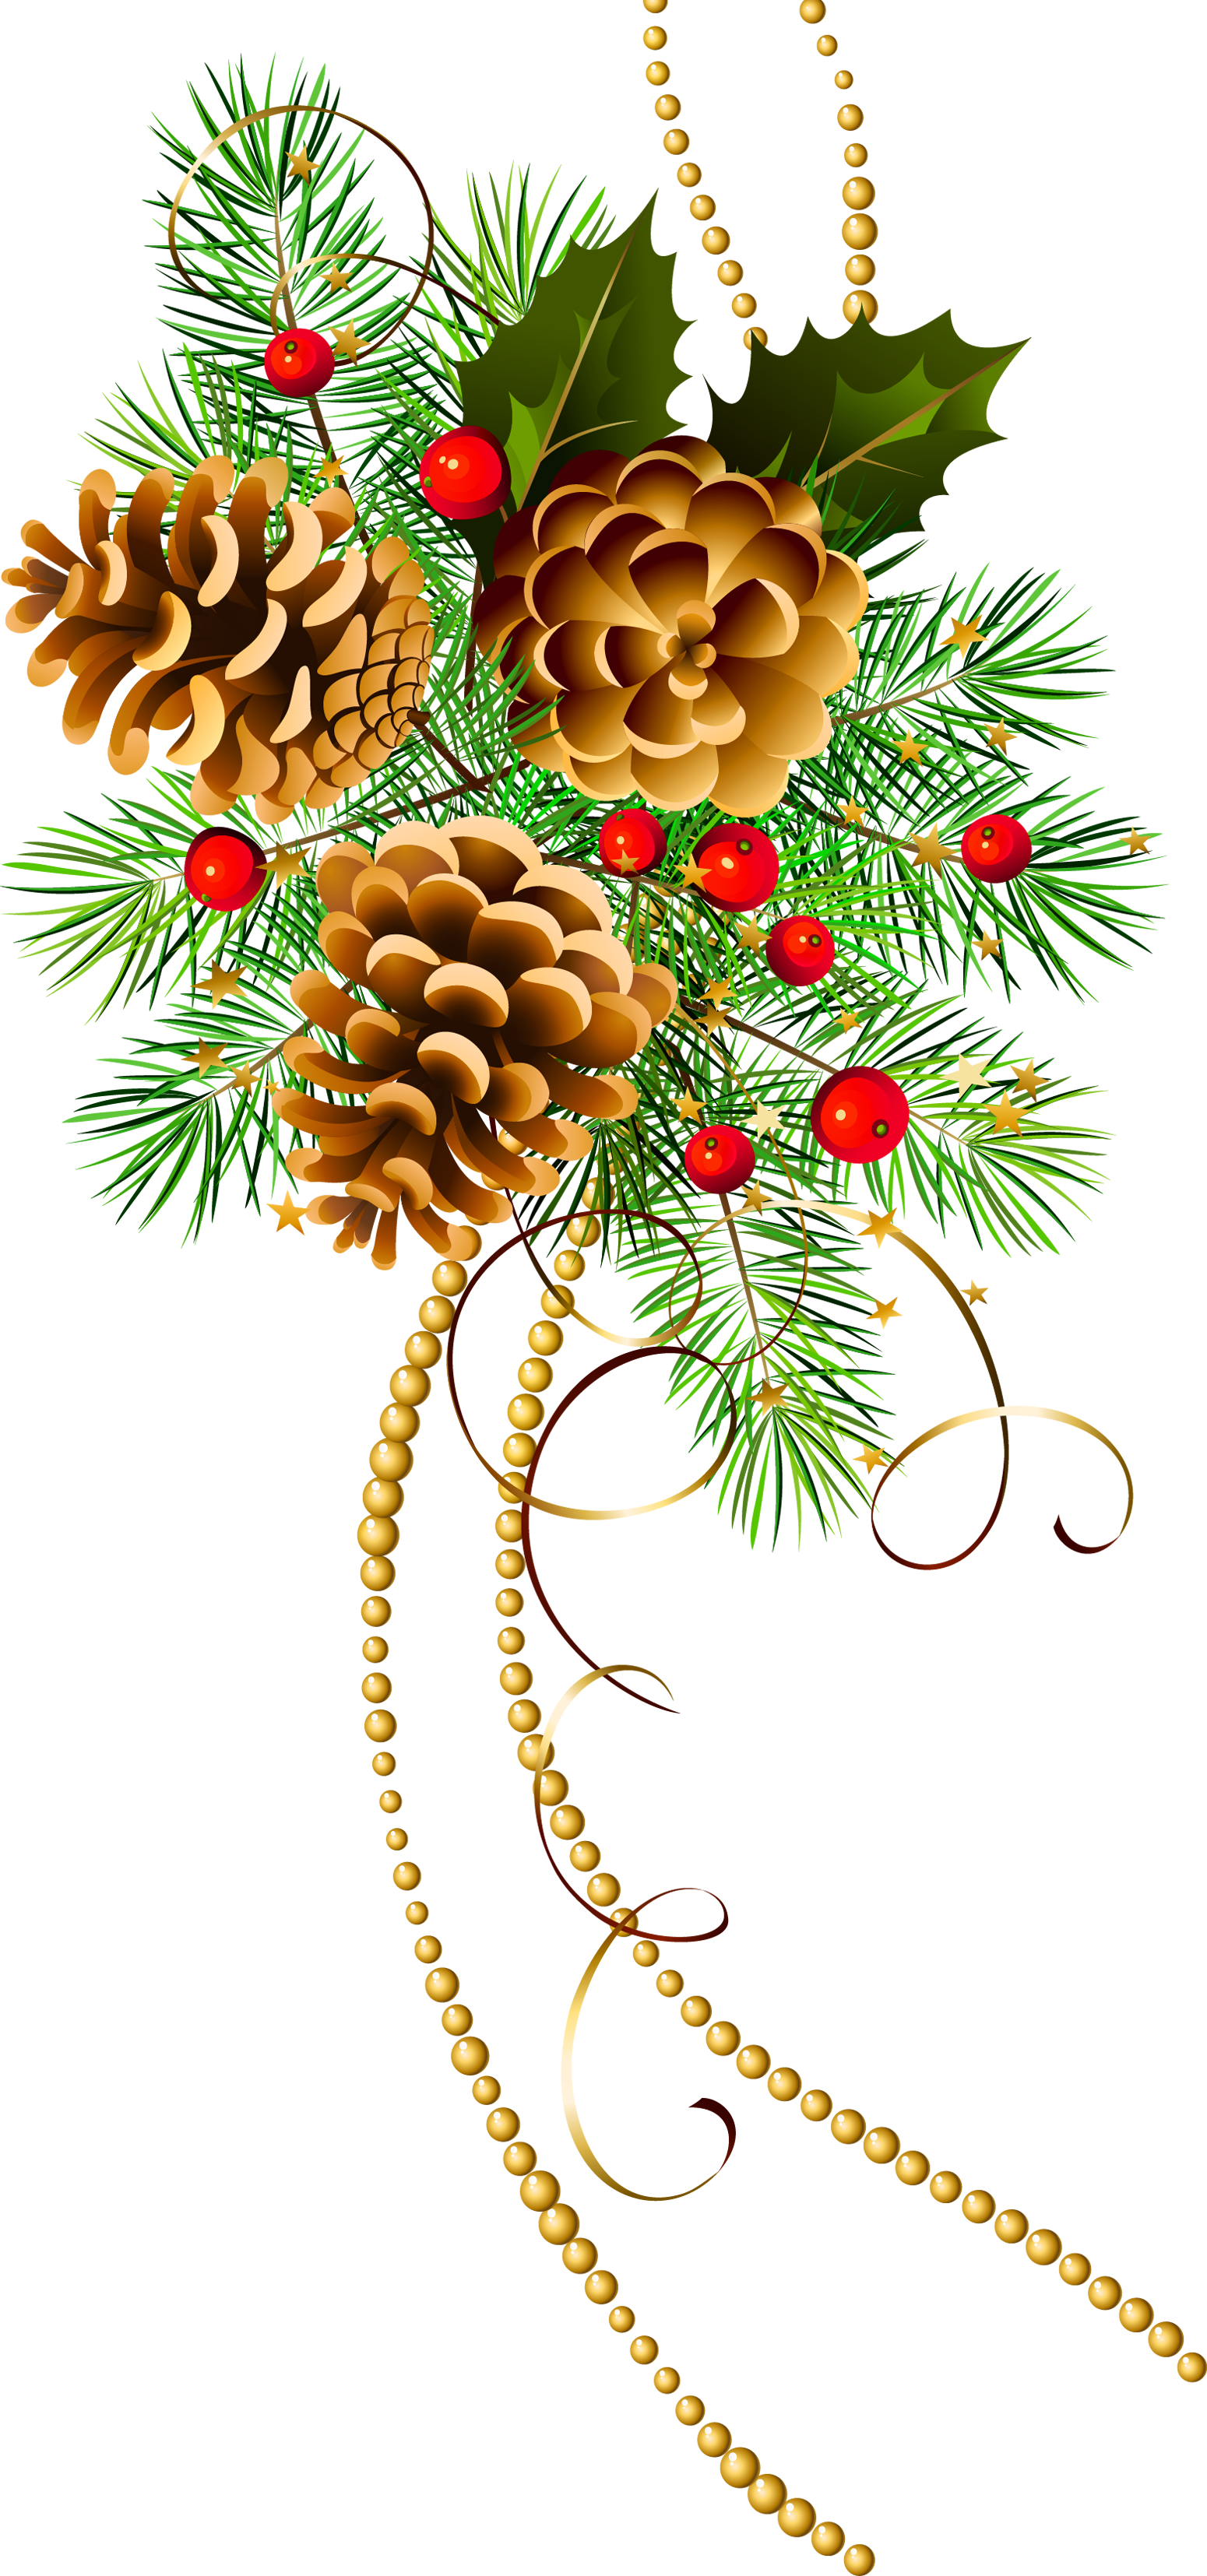 Christmas pine cone png. Three cones with branch